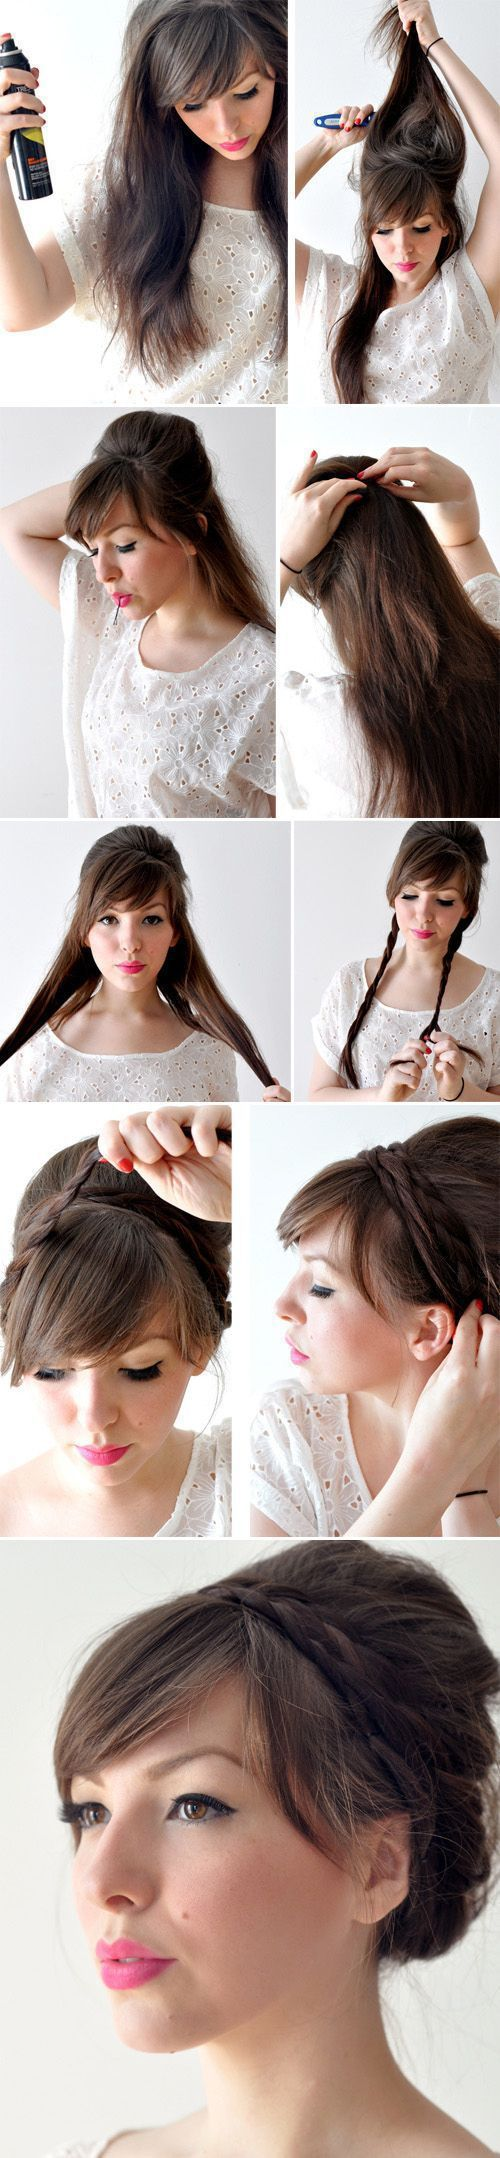 Easy Hairstyles For Short Hair At Home Haircuts